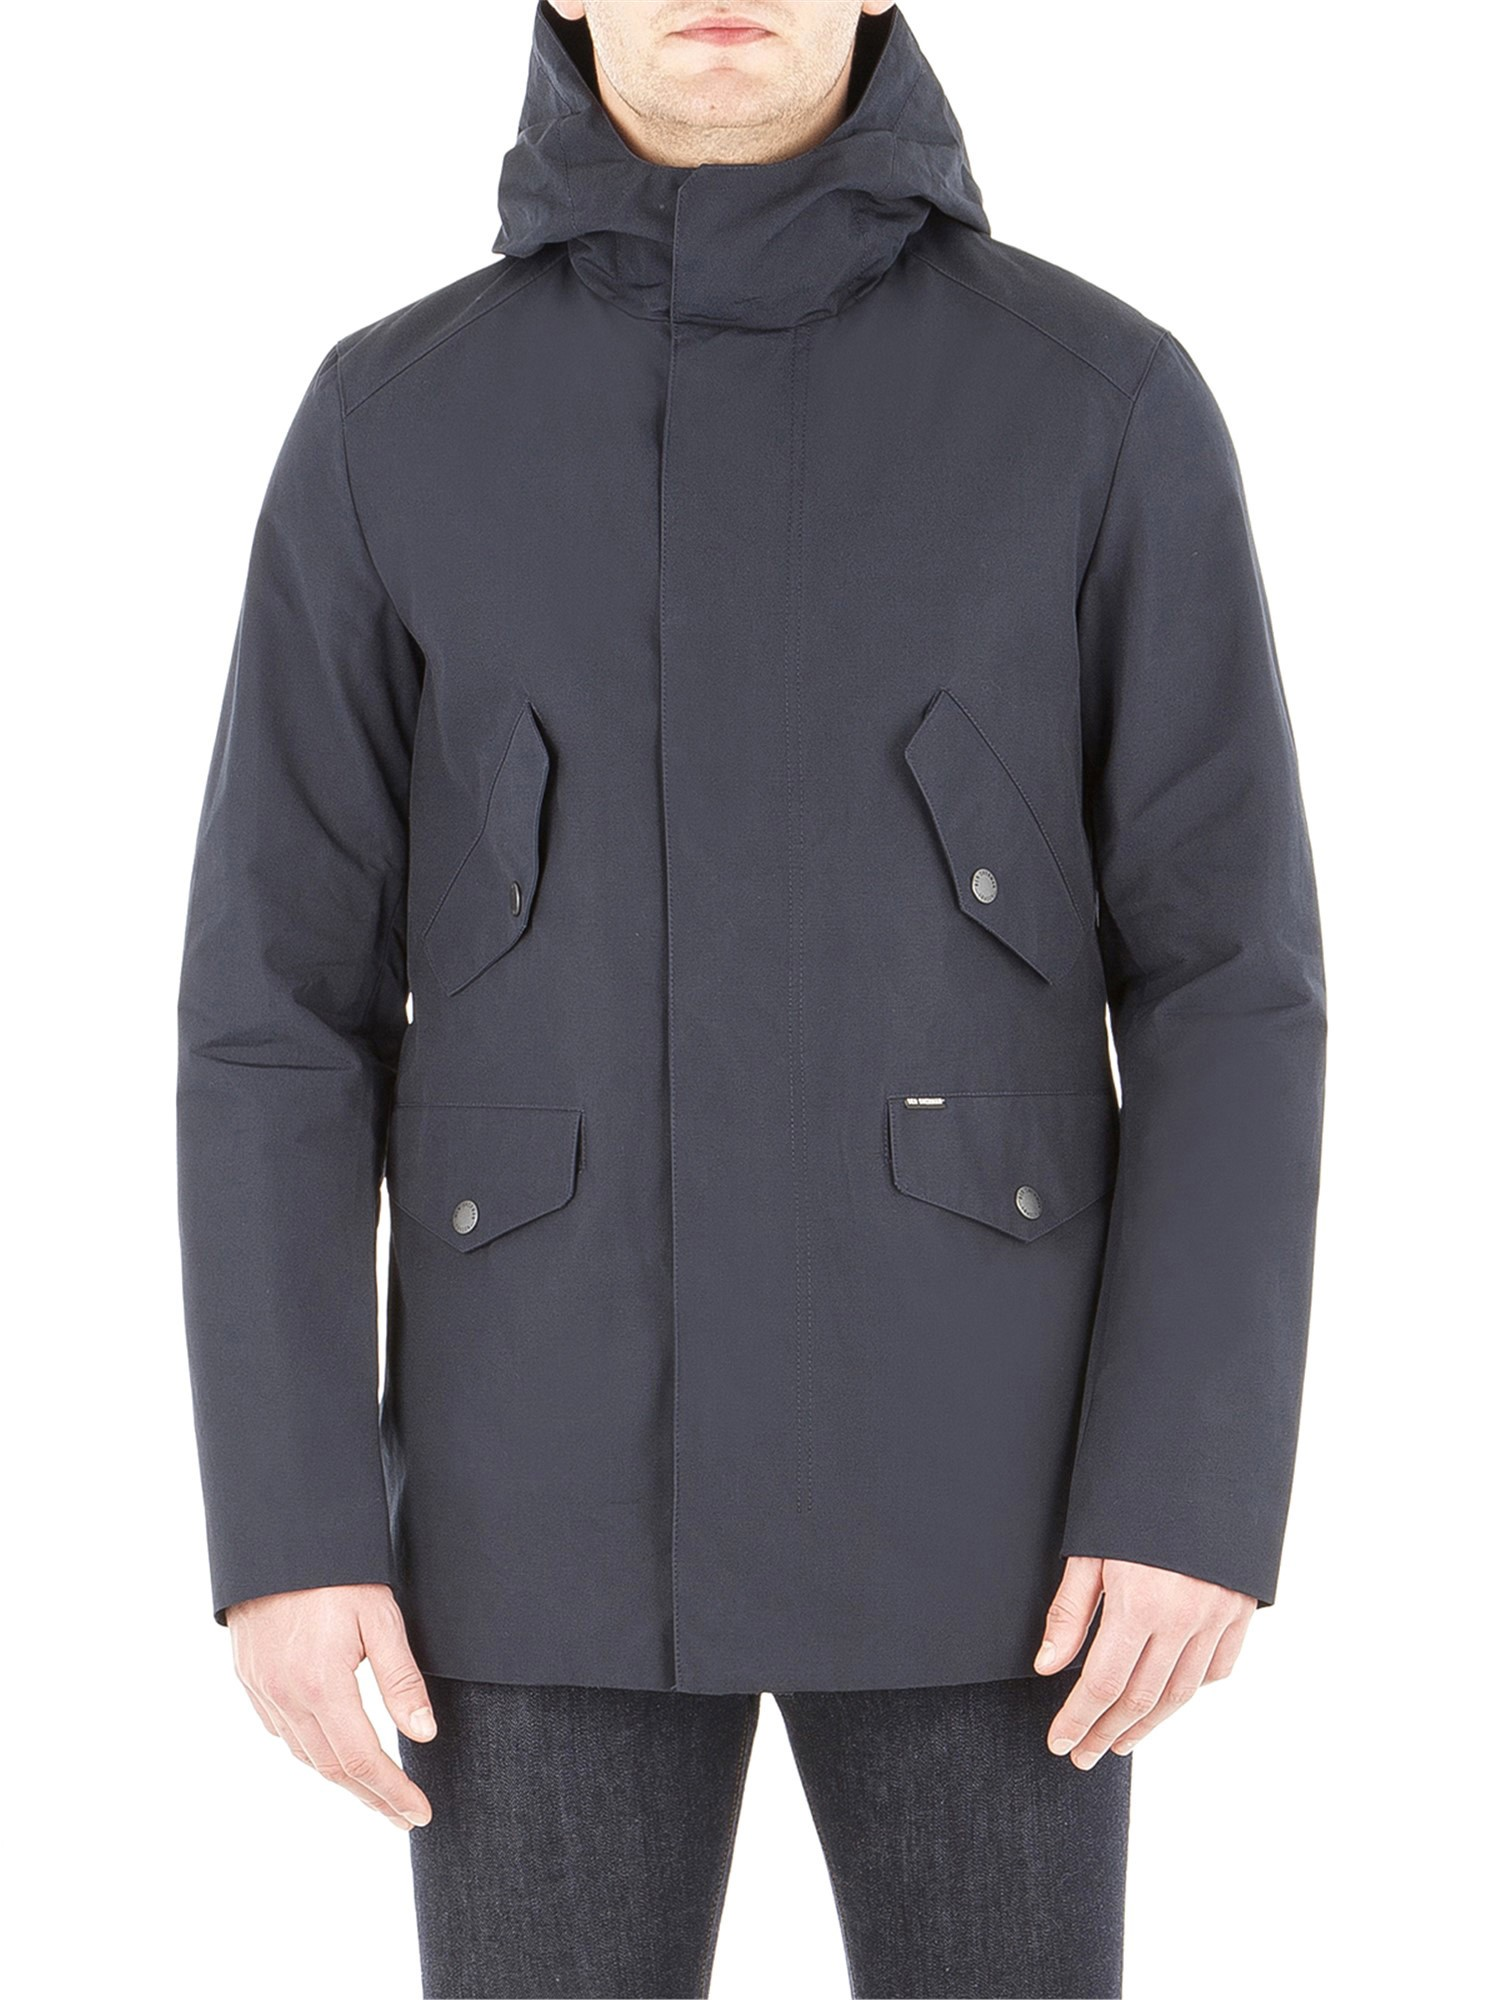 Ben Sherman Staples Navy Urban Cotton Parka